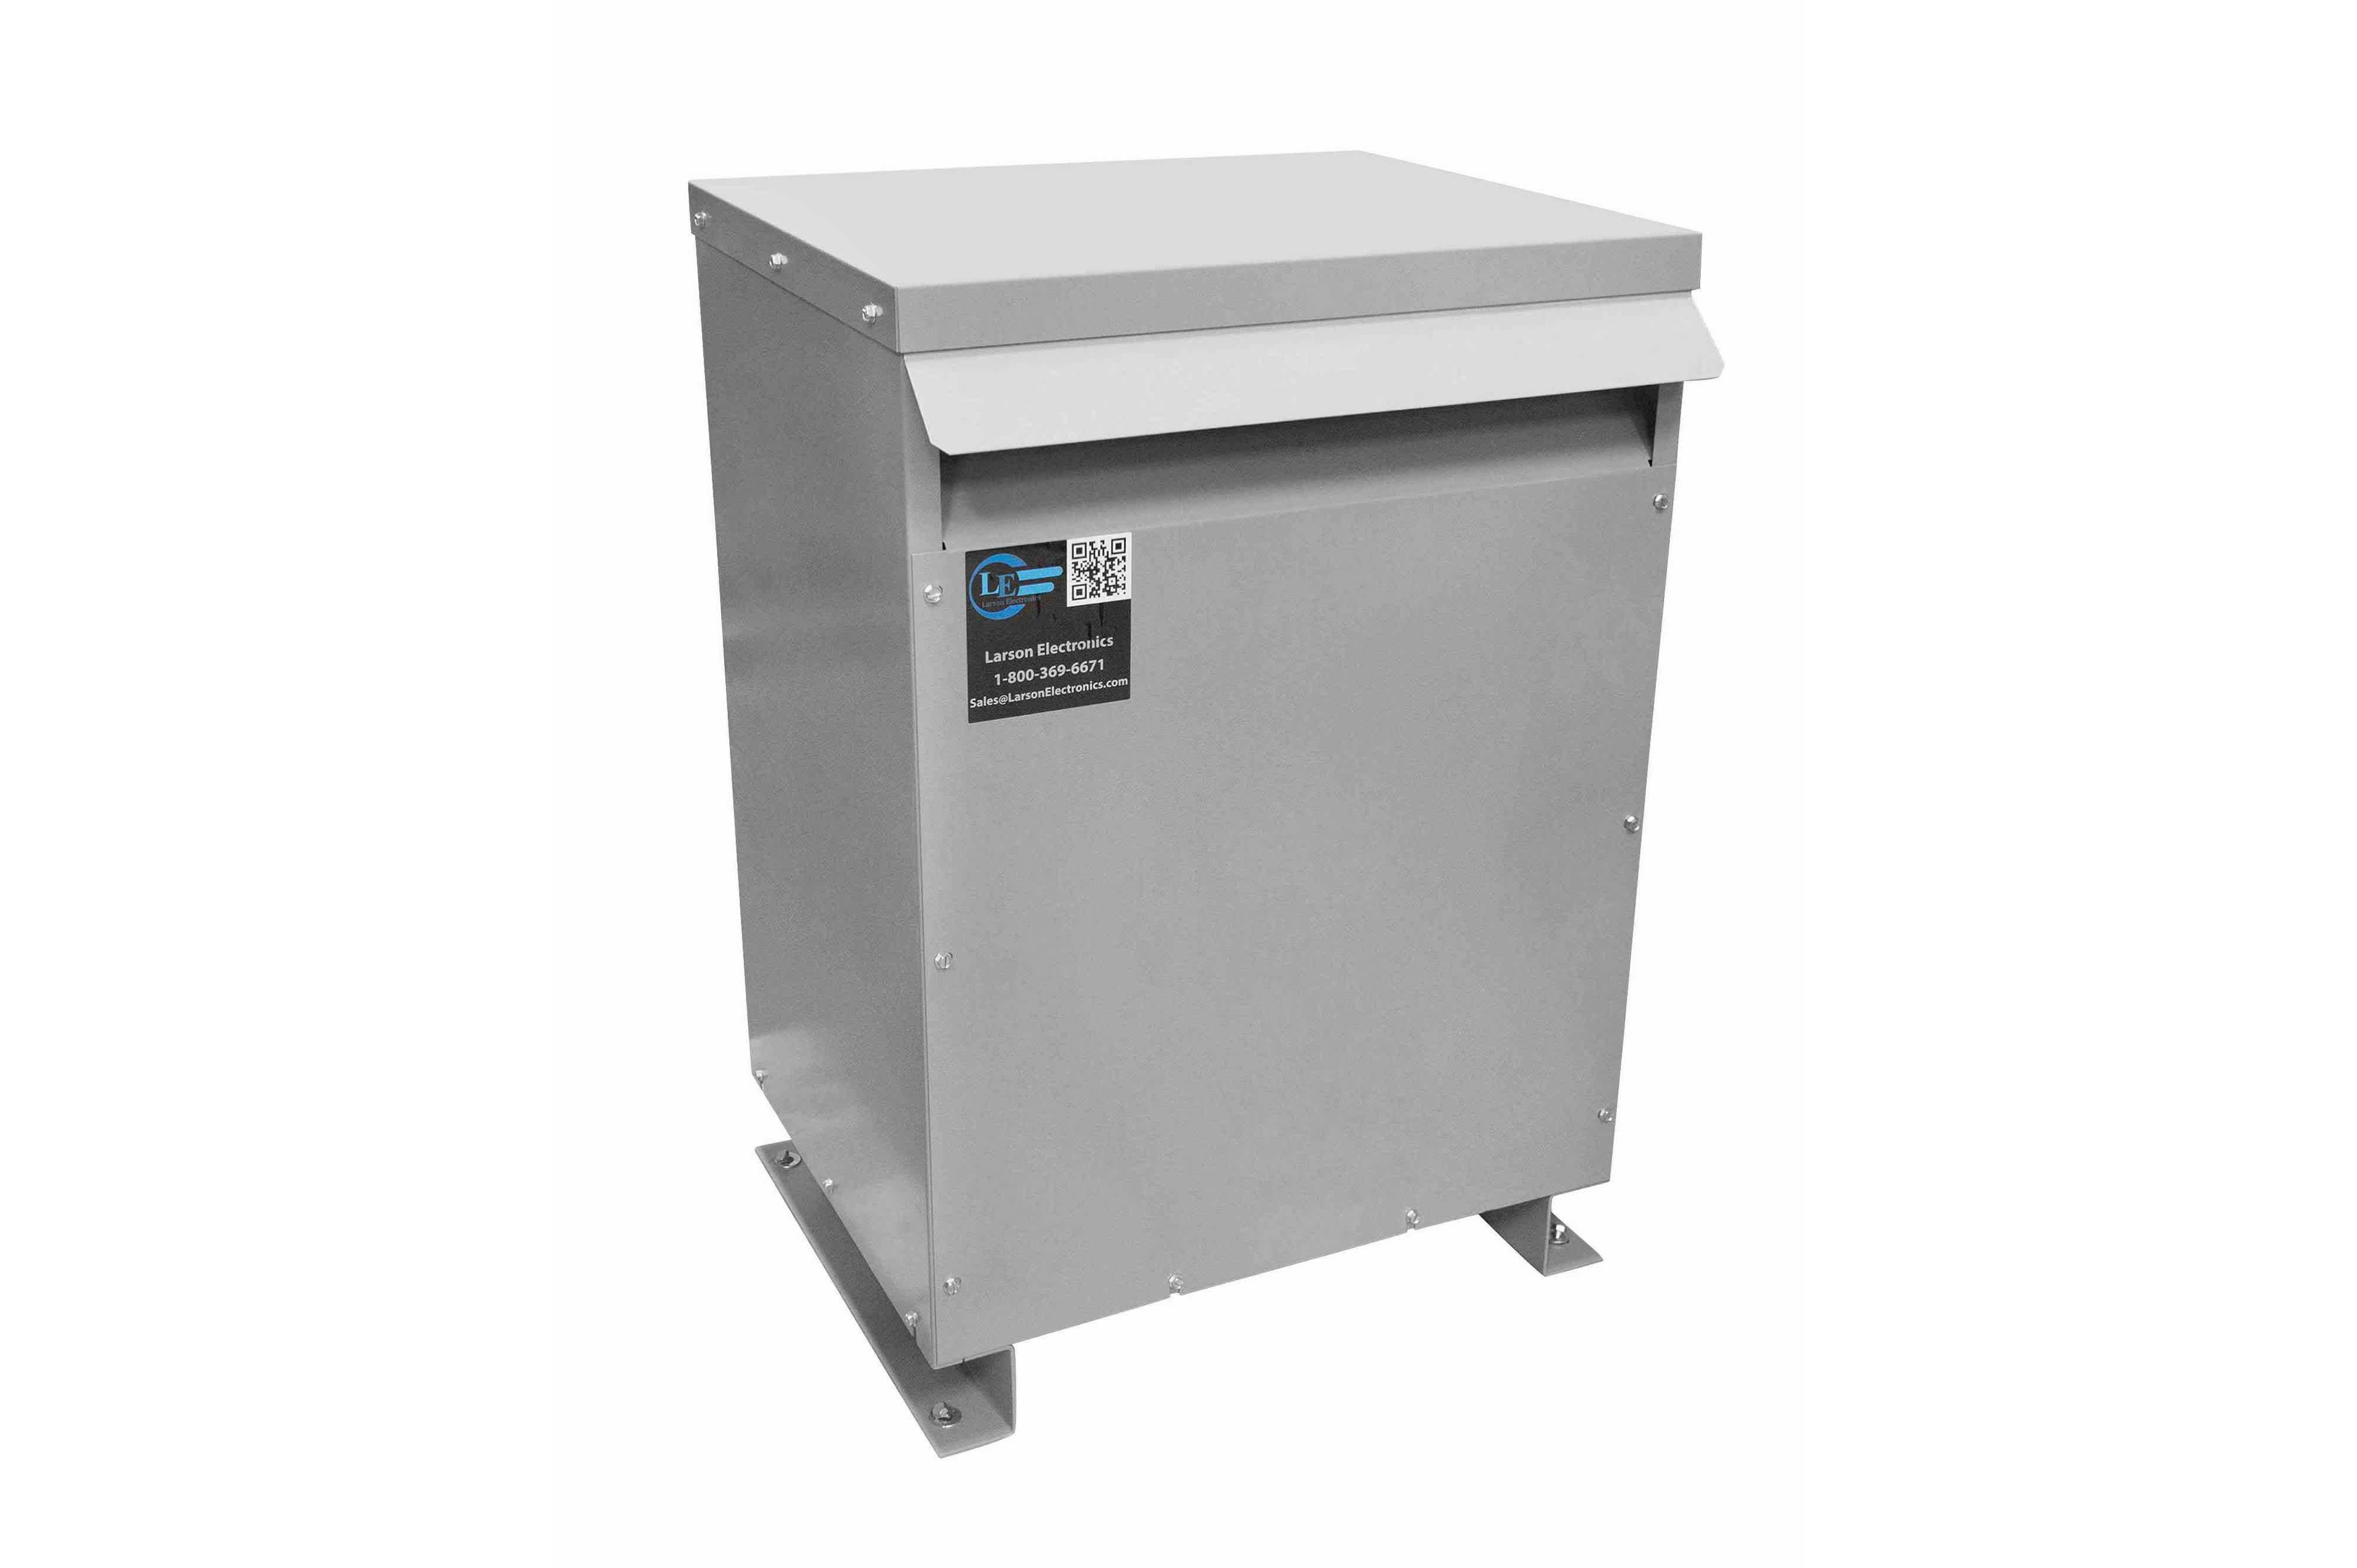 30 kVA 3PH Isolation Transformer, 380V Delta Primary, 240 Delta Secondary, N3R, Ventilated, 60 Hz